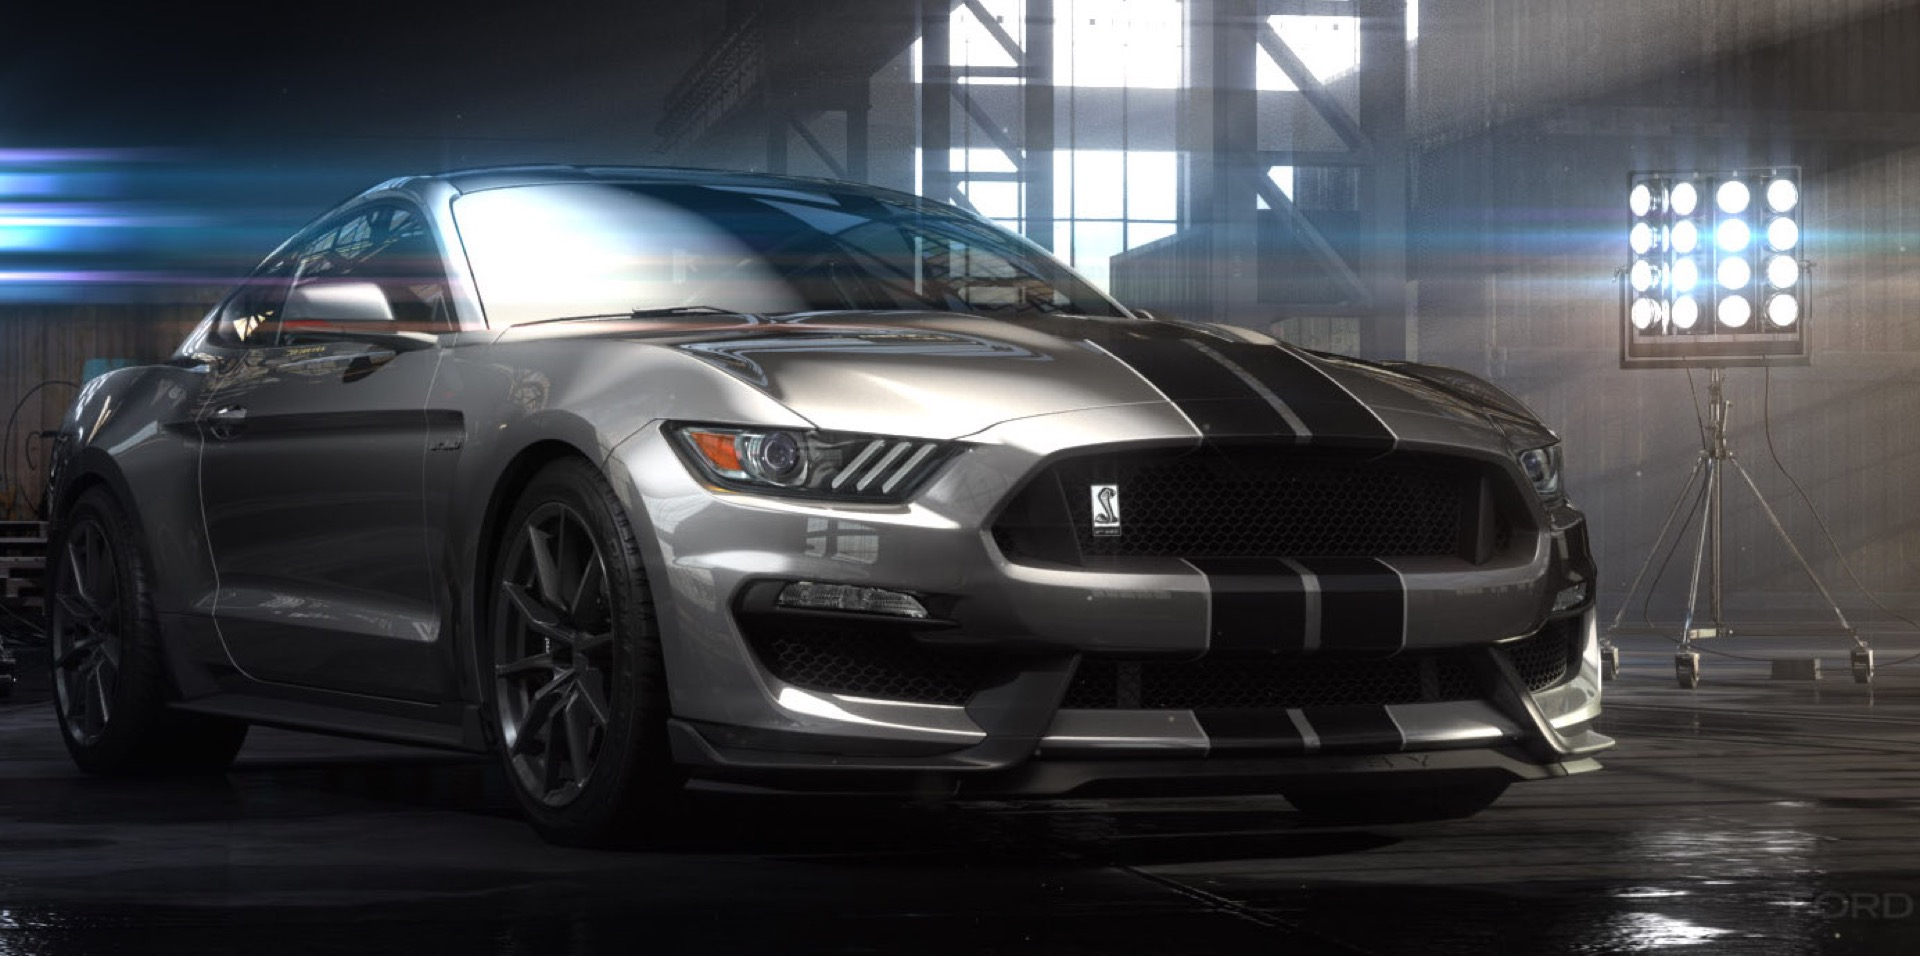 2016 ford mustang shelby gt350 packs new v 8 serious track upgrades video live photos. Black Bedroom Furniture Sets. Home Design Ideas